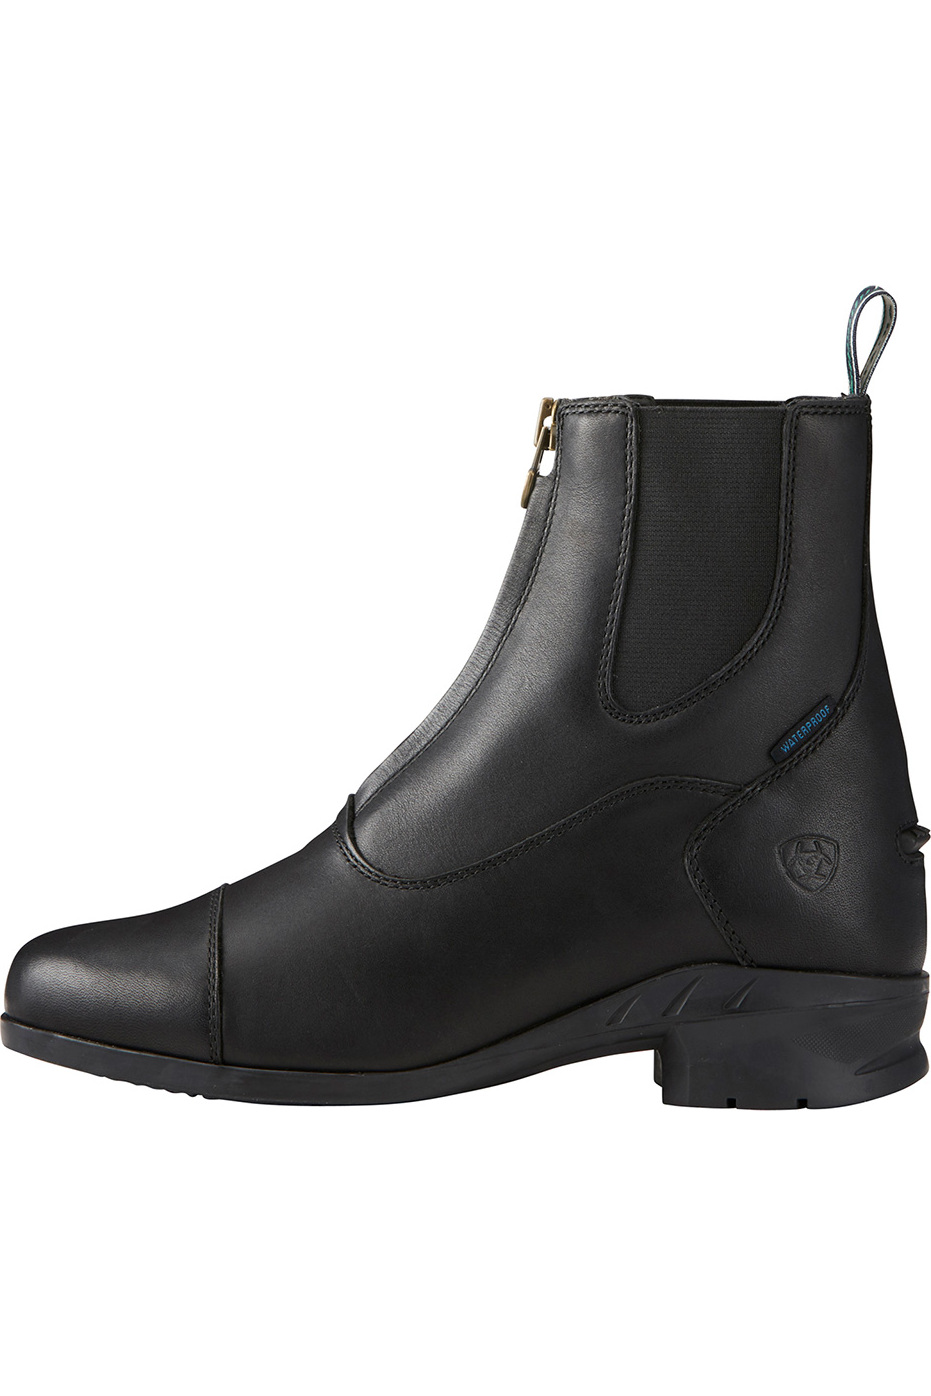 Ariat Heritage Iv Zip Short Riding Boots Black The